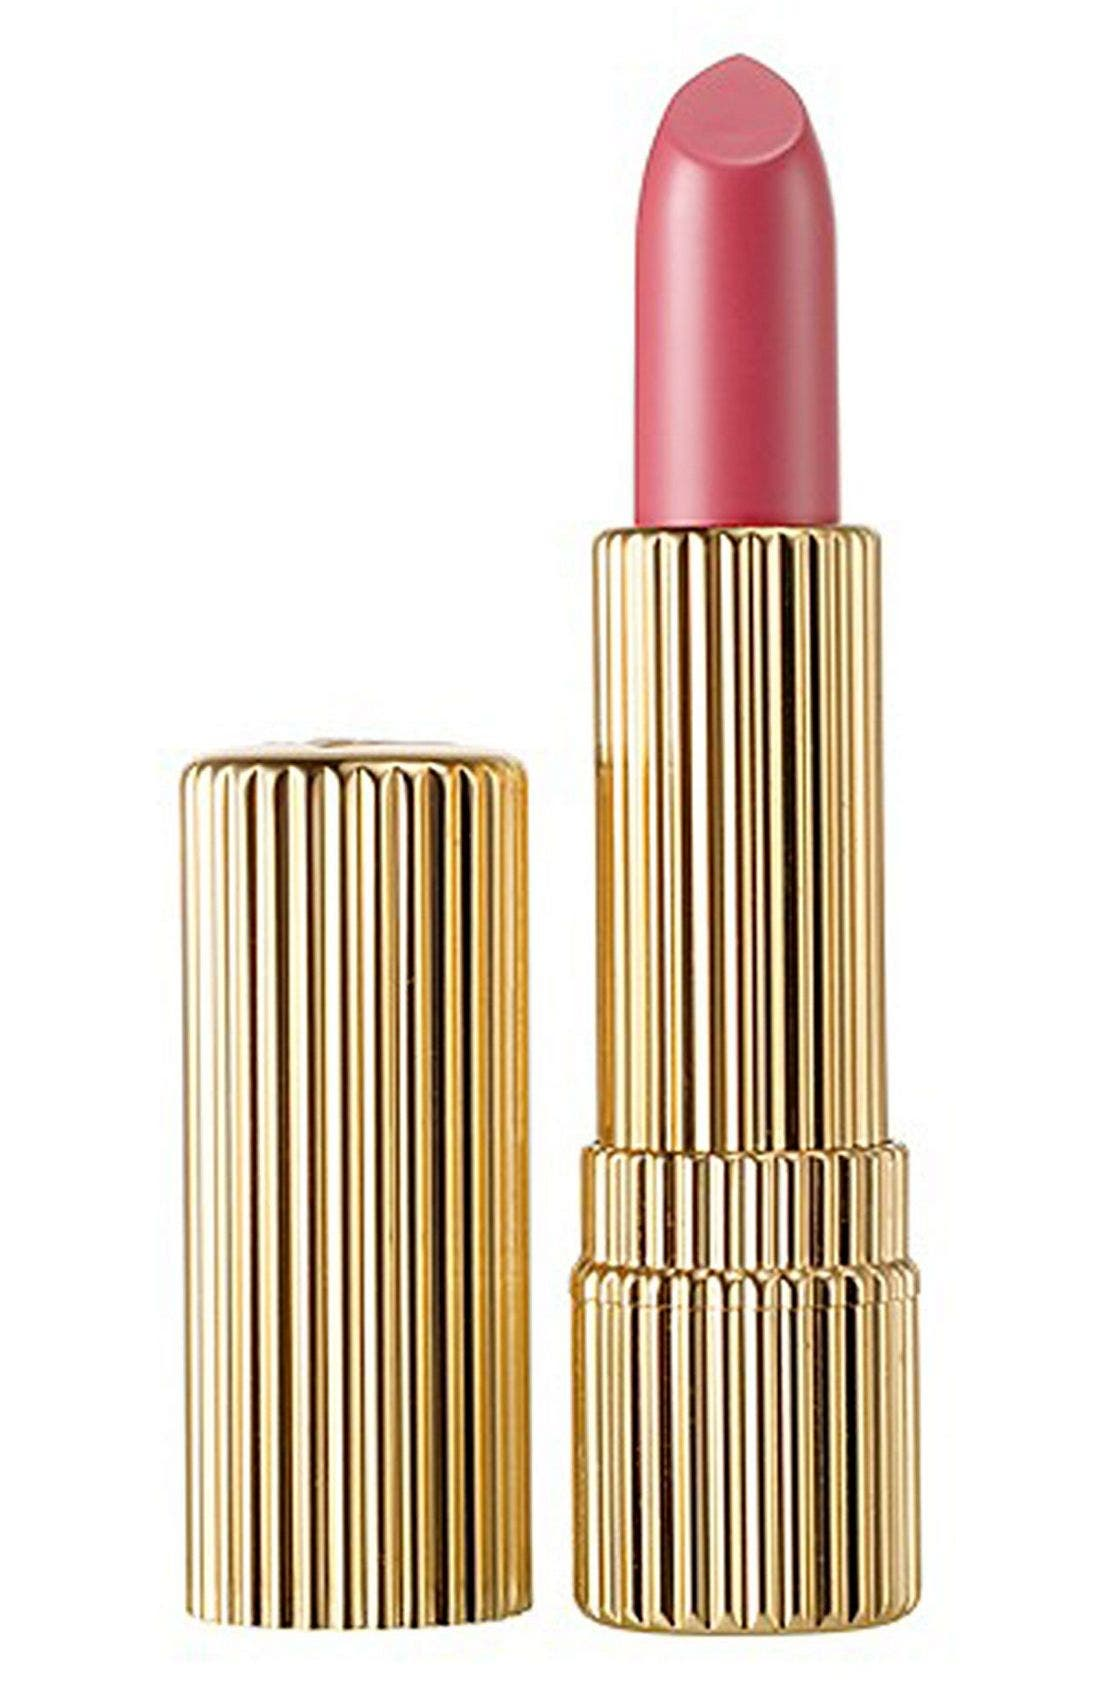 All Day Lipstick,                             Main thumbnail 1, color,                             200